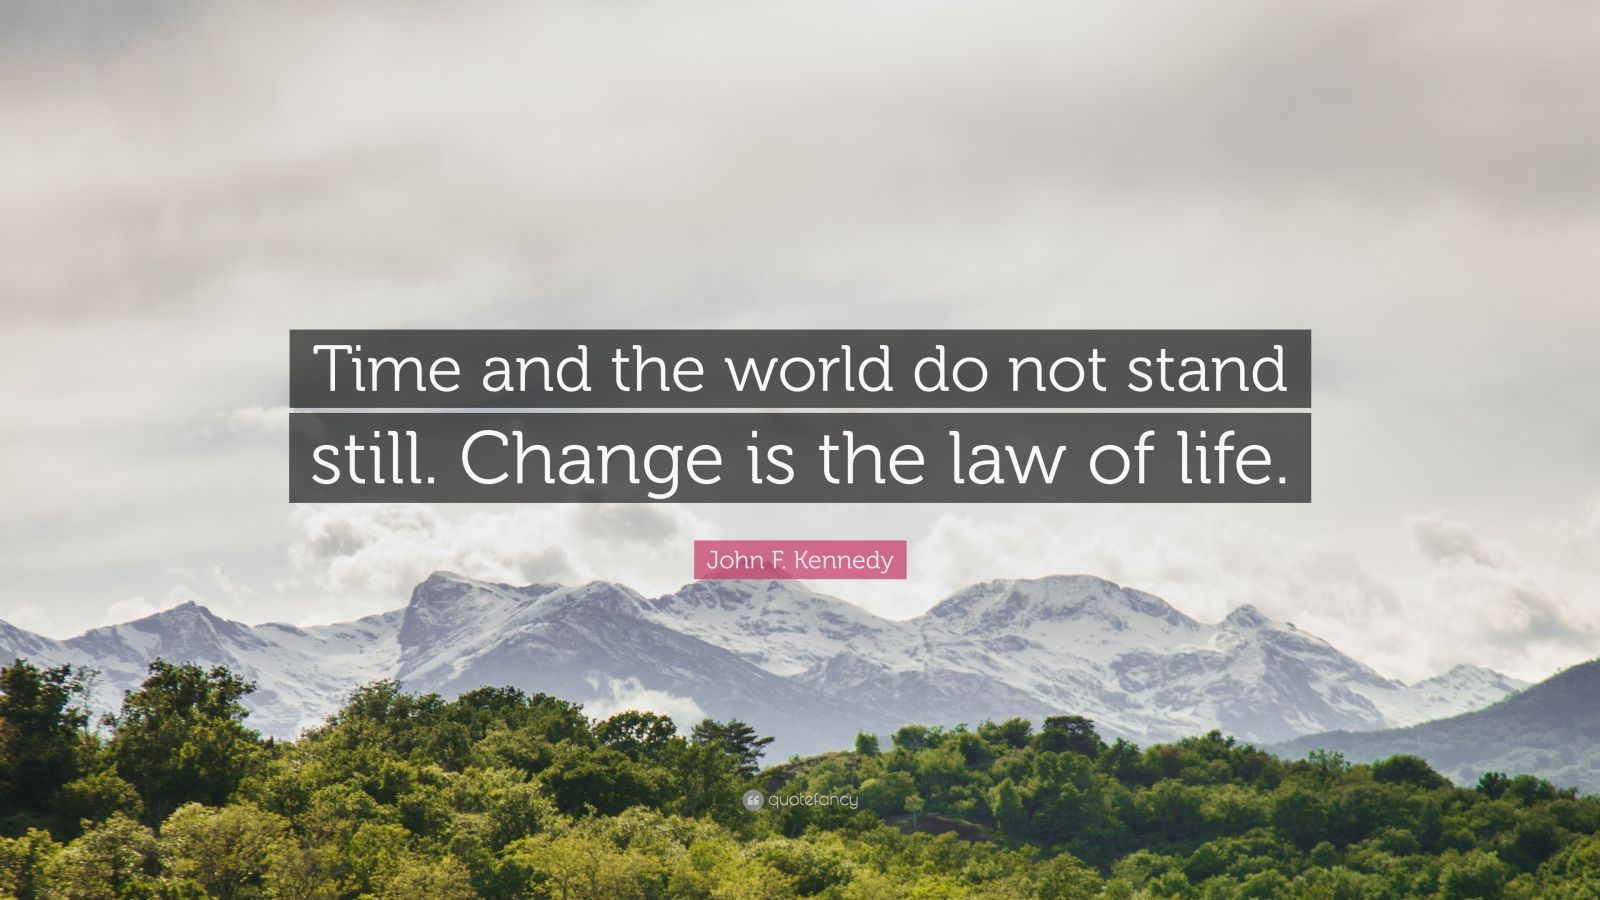 """John F. Kennedy Quote: """"Time and the world do not stand still. Change is the law of life."""""""